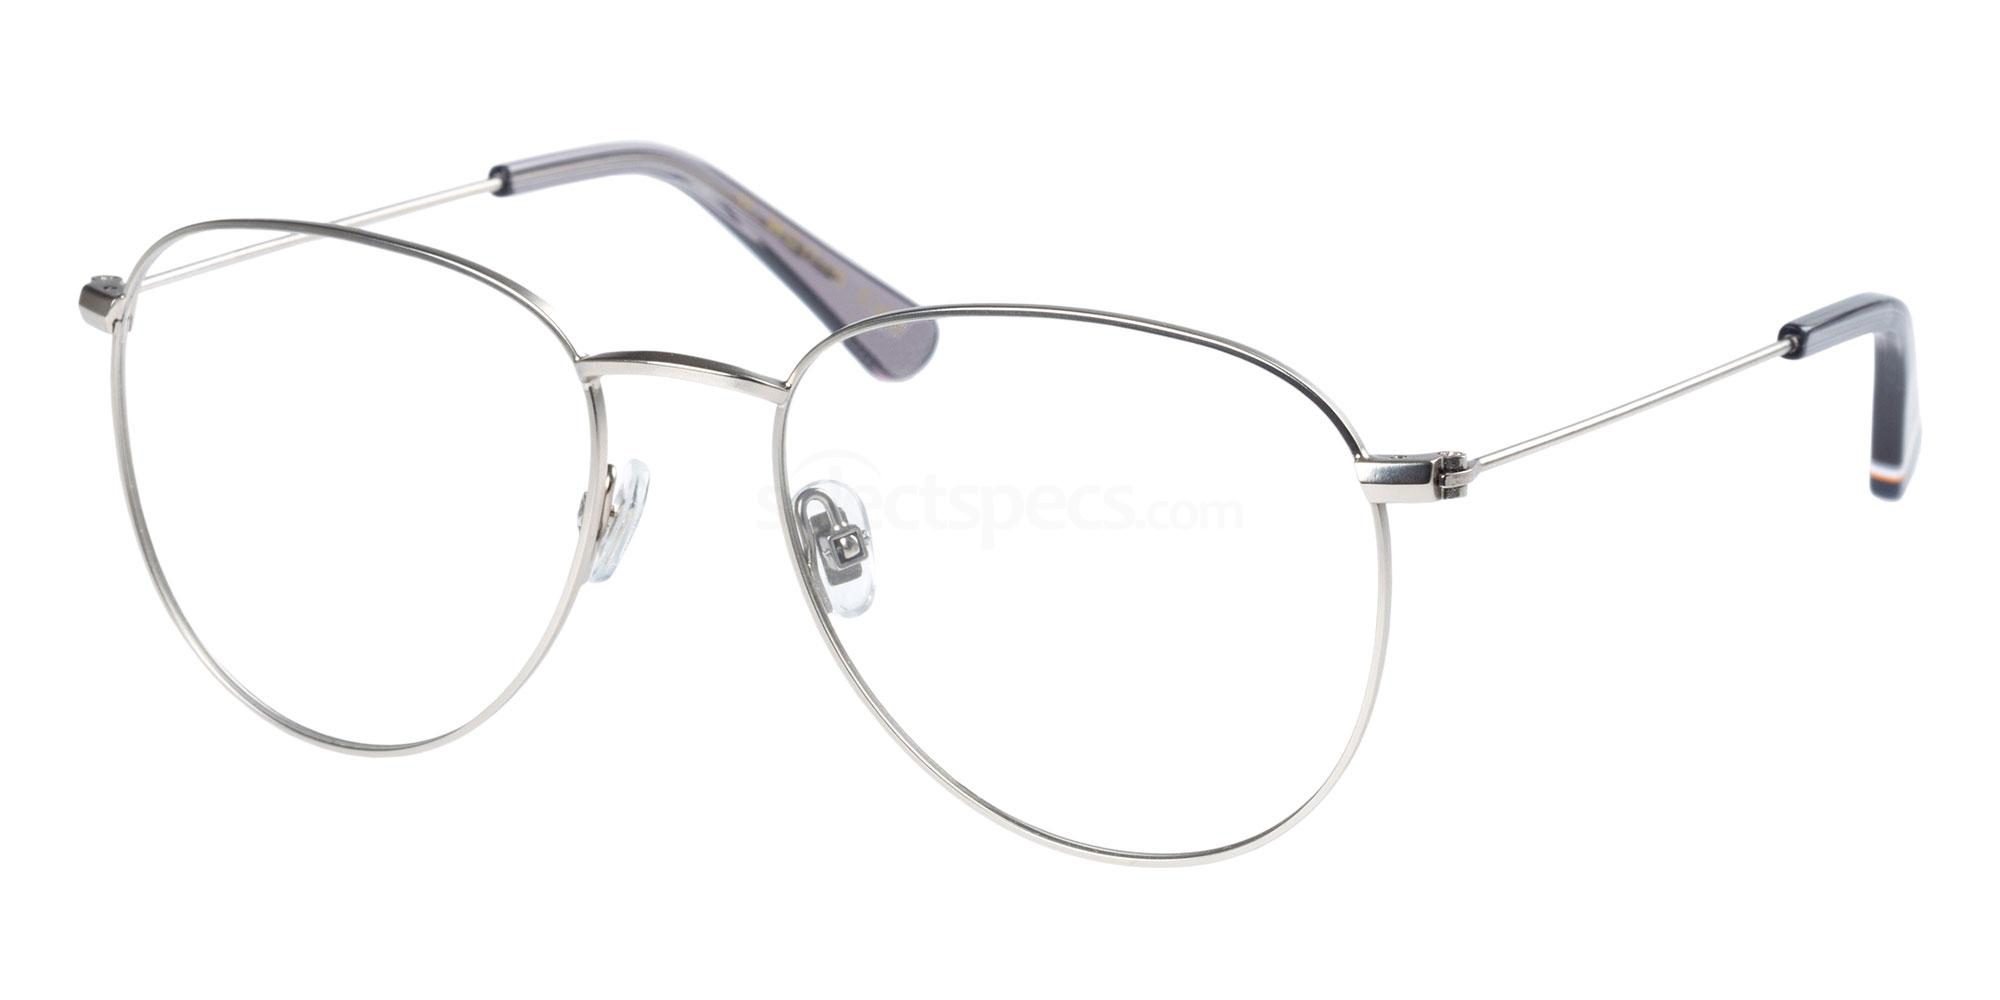 002 SDO-MACKENSIE Glasses, Superdry